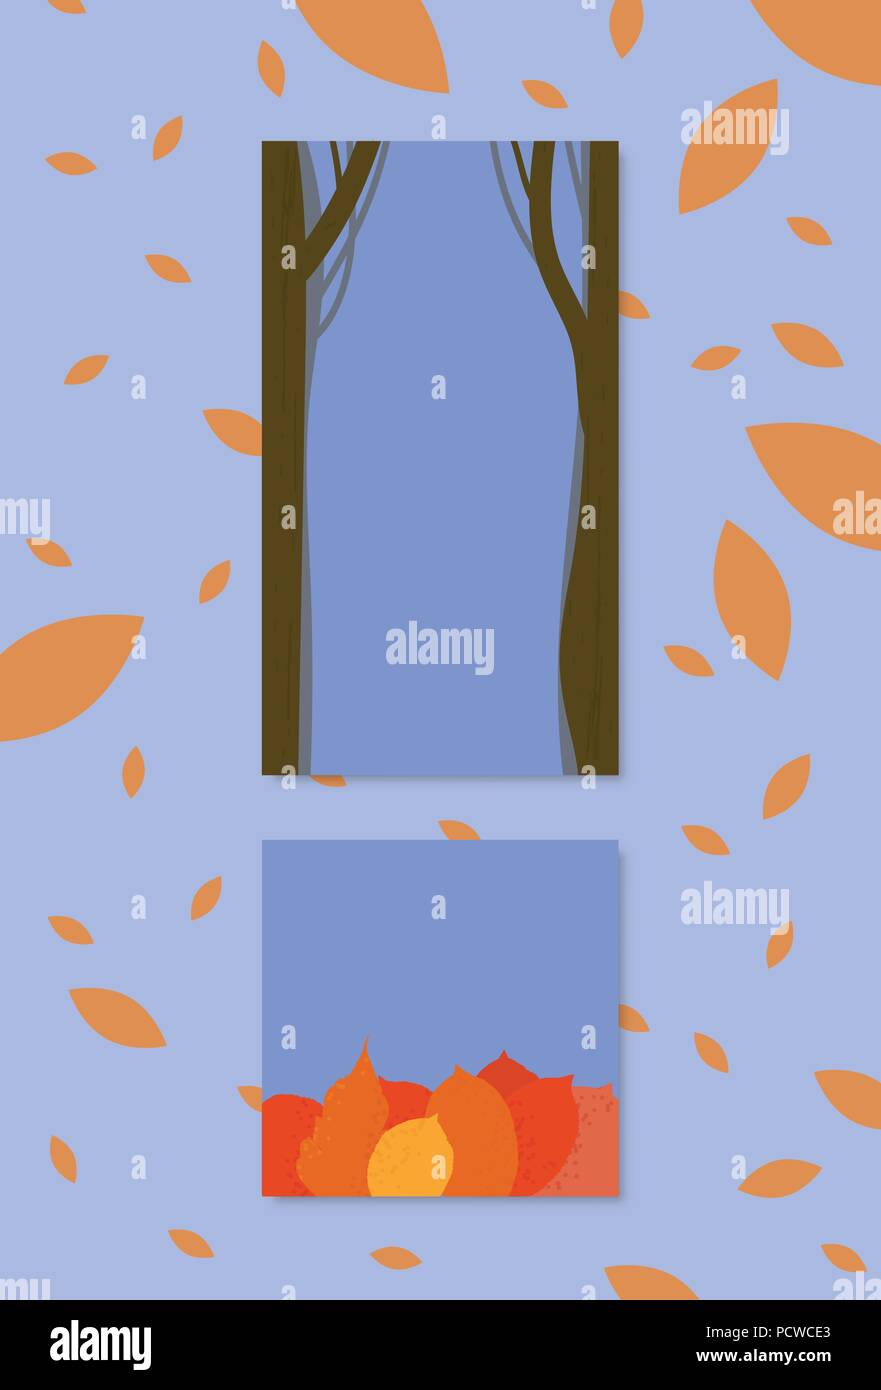 Set Of Backgrounds With Autumn Trees And Leaves Elements For Social